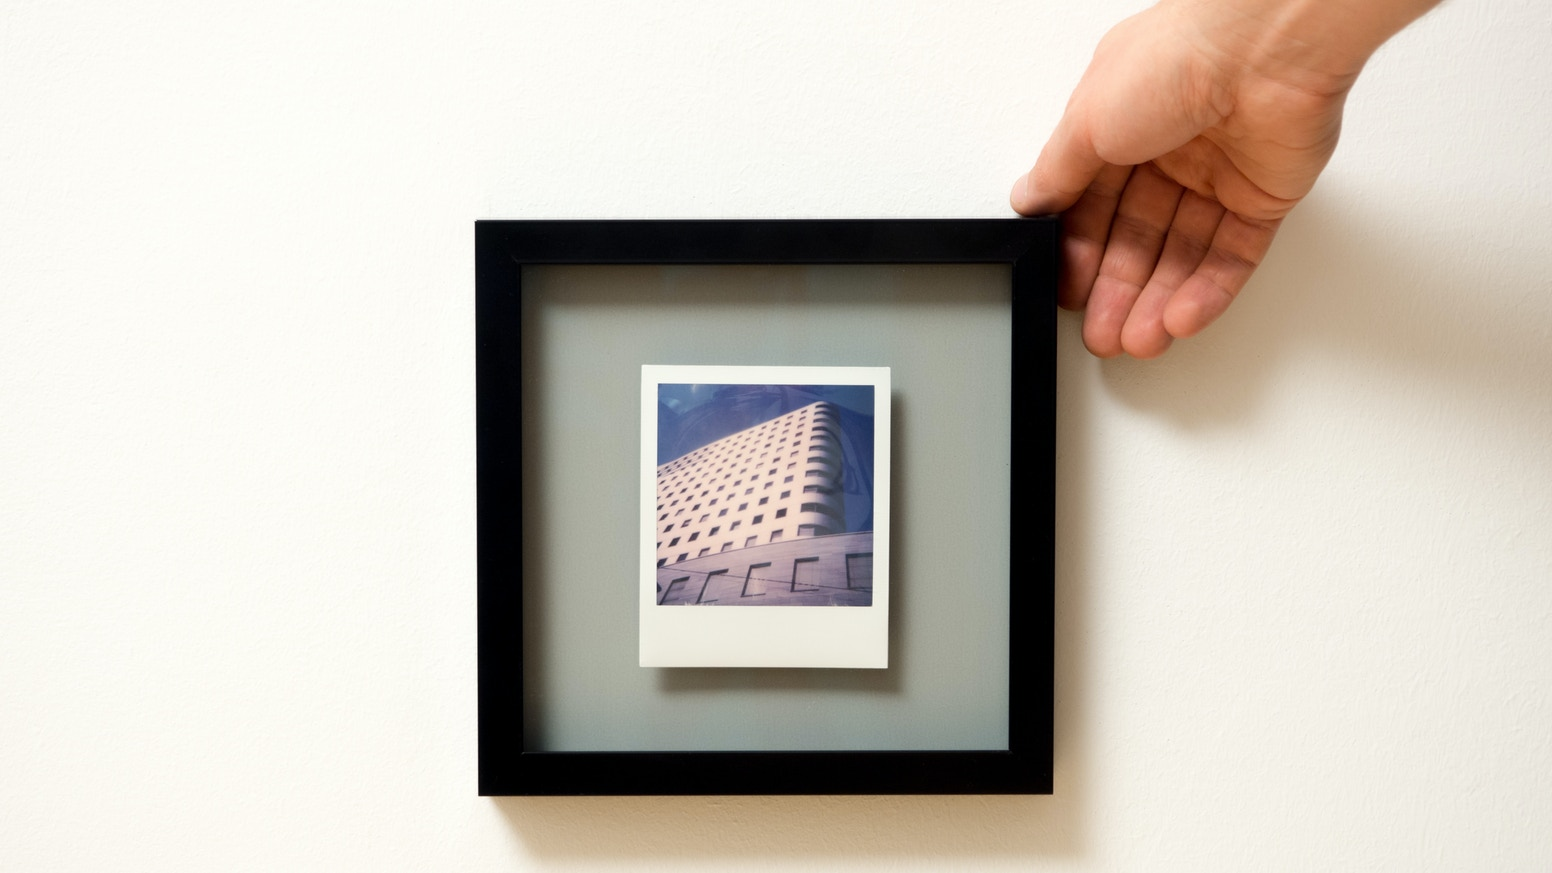 The future home for your best Polaroid pictures. An aluminum distance frame with levitation effect and UV-protection glass